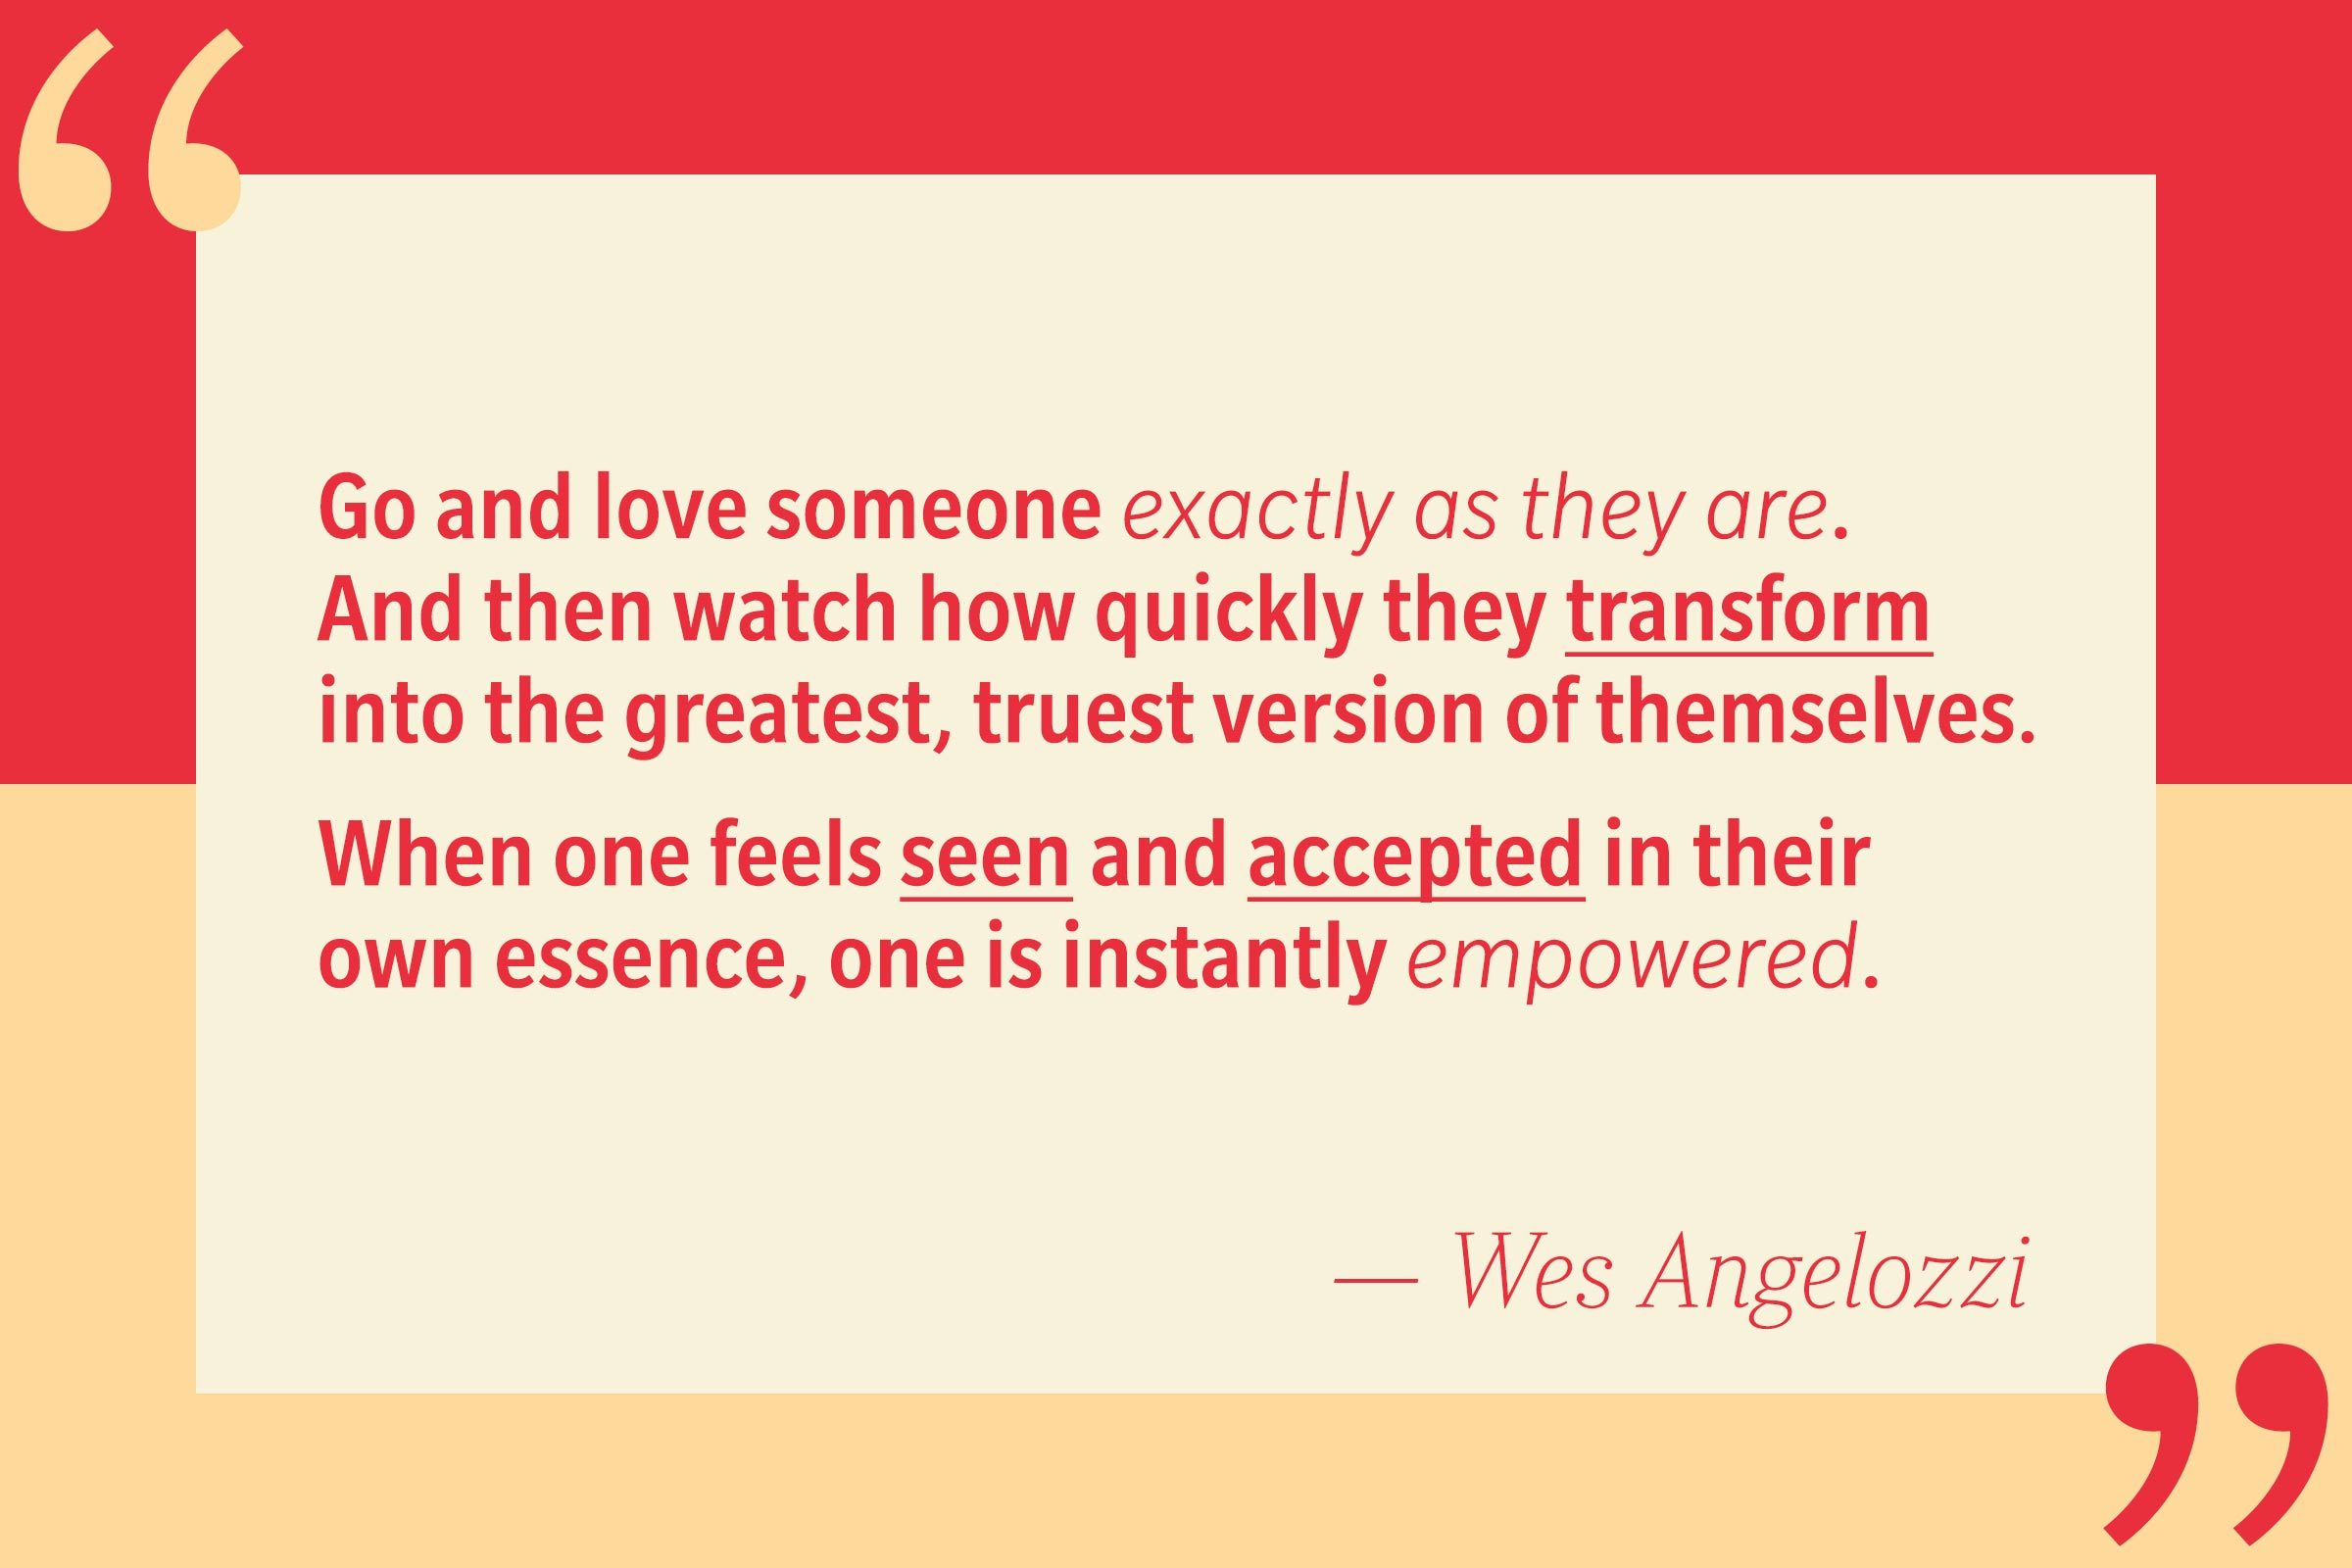 Go and love someone exactly as they are. And then watch how quickly they transform into the greatest, truest version of themselves. When one feels seen and appreciated in their own essence, one is instantly empowered. — Wes Angelozzi